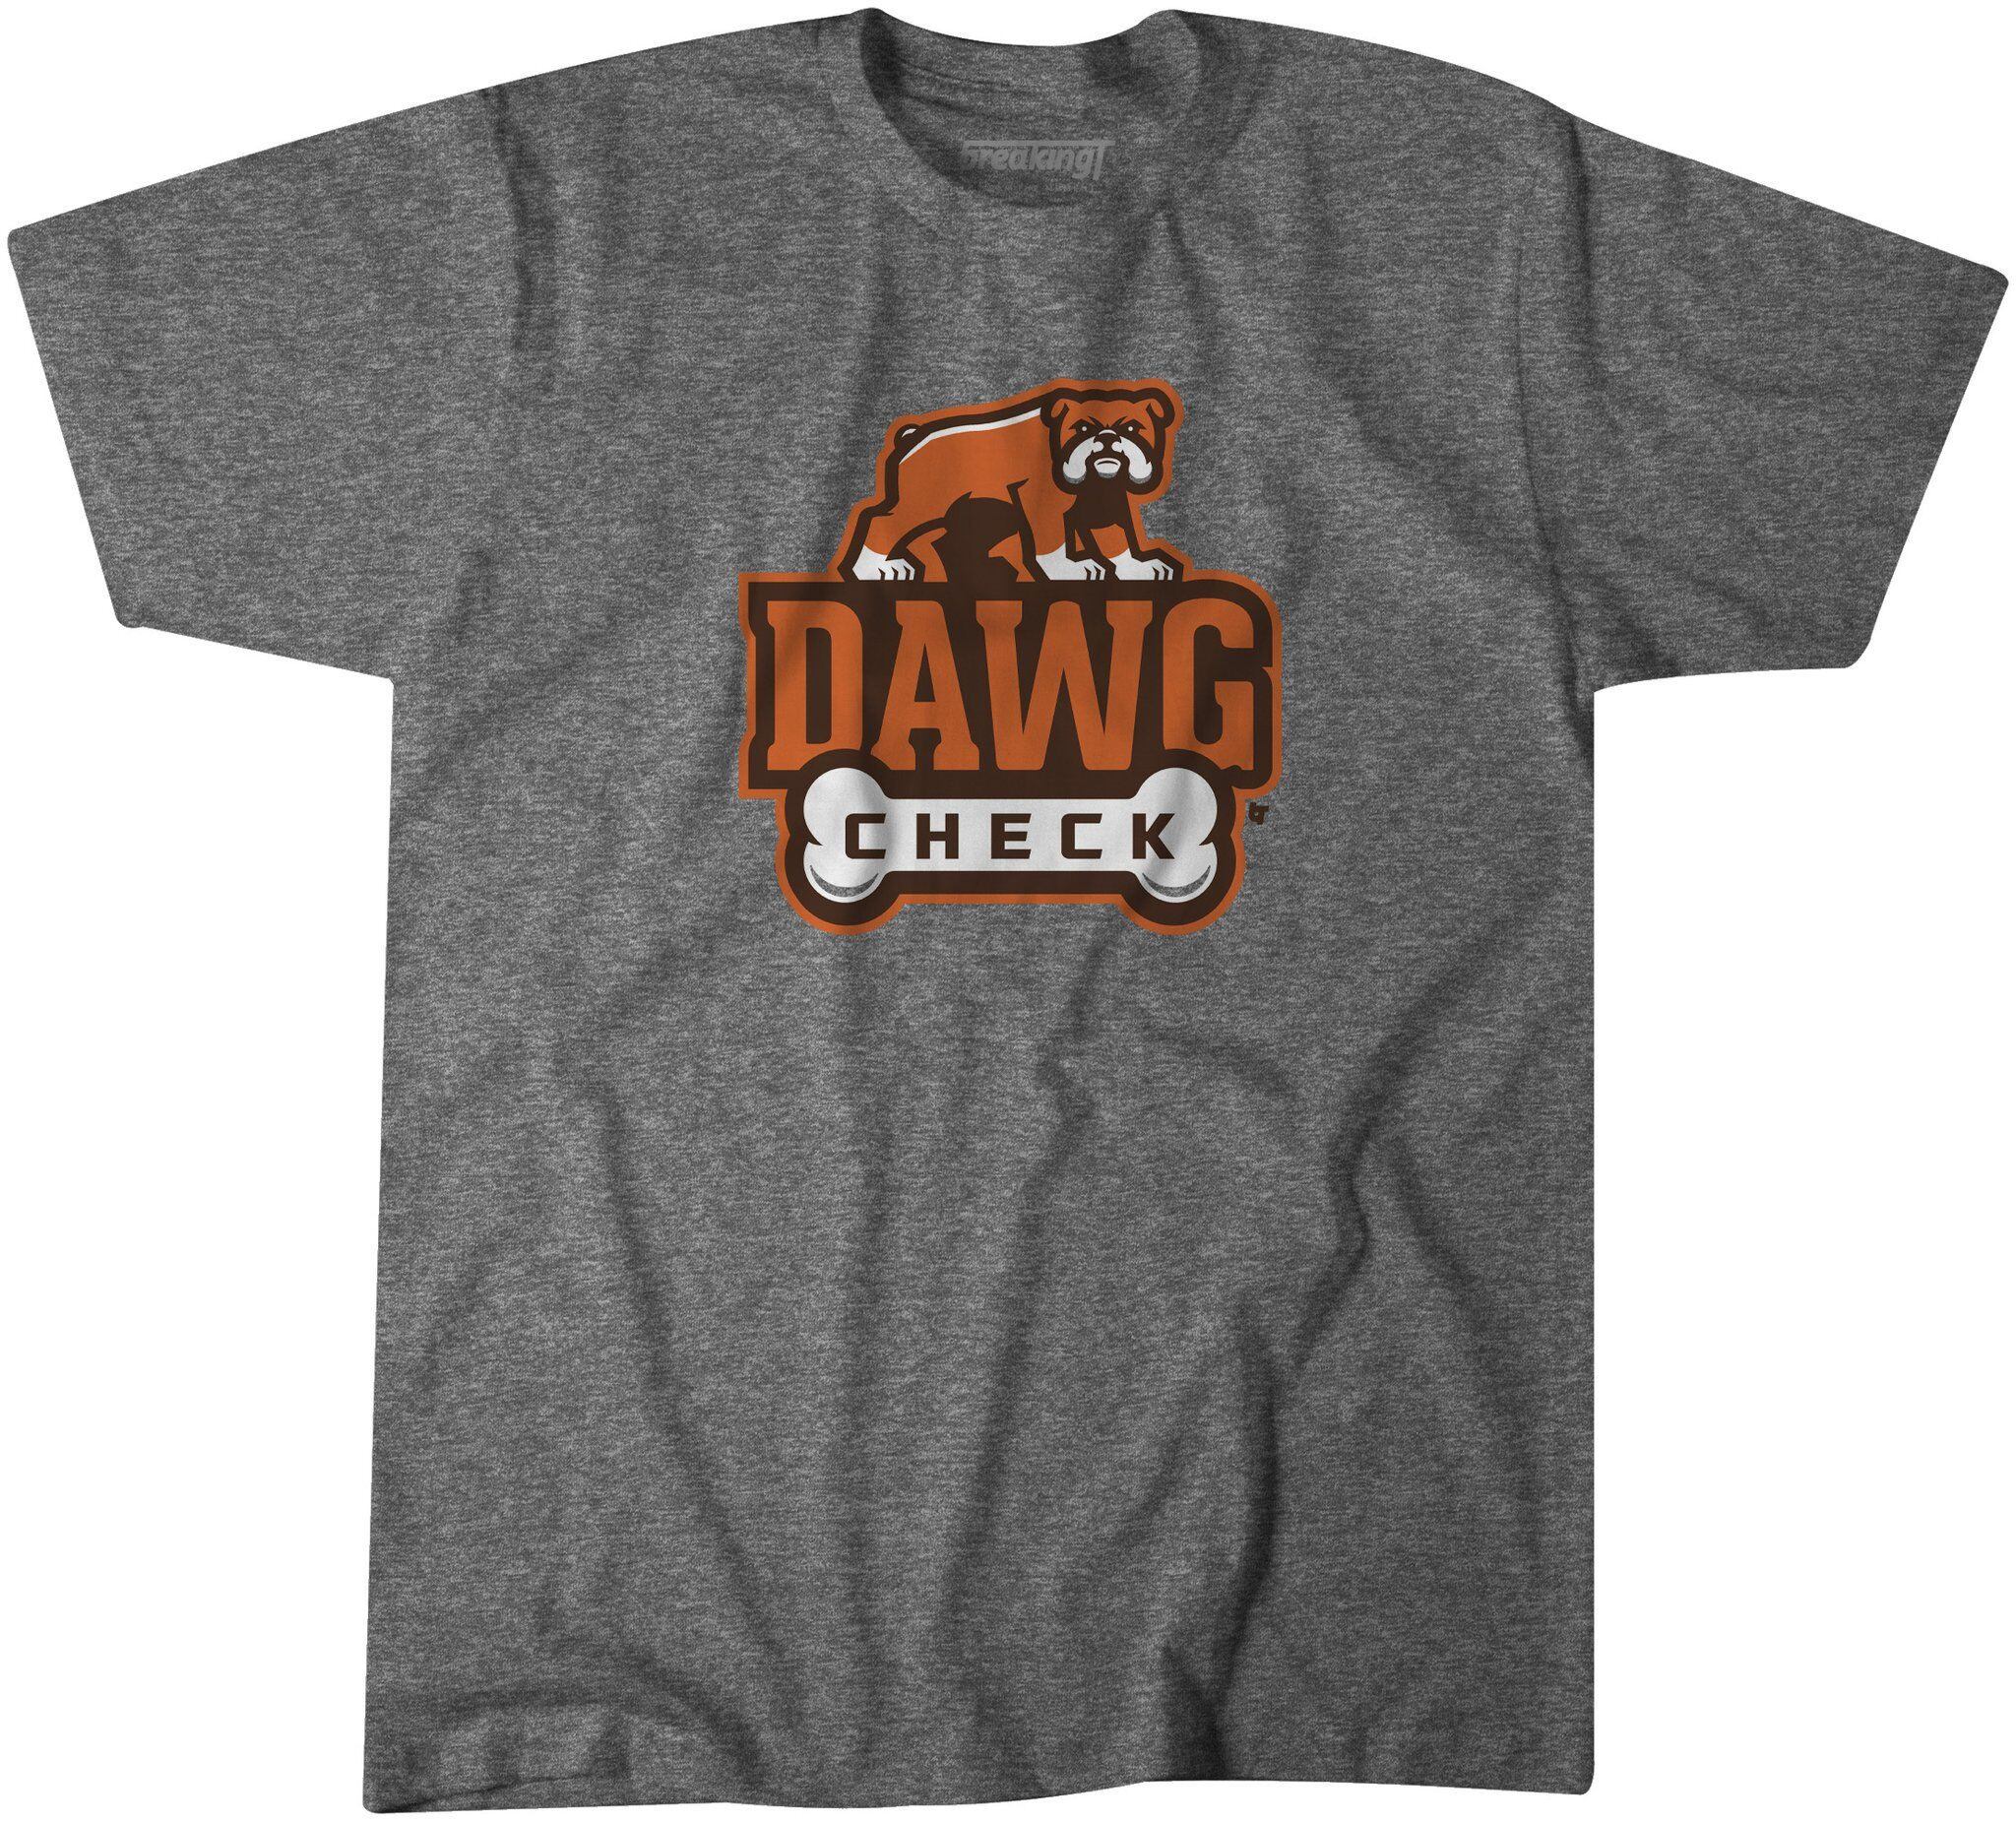 Cleveland football fans need this shirt